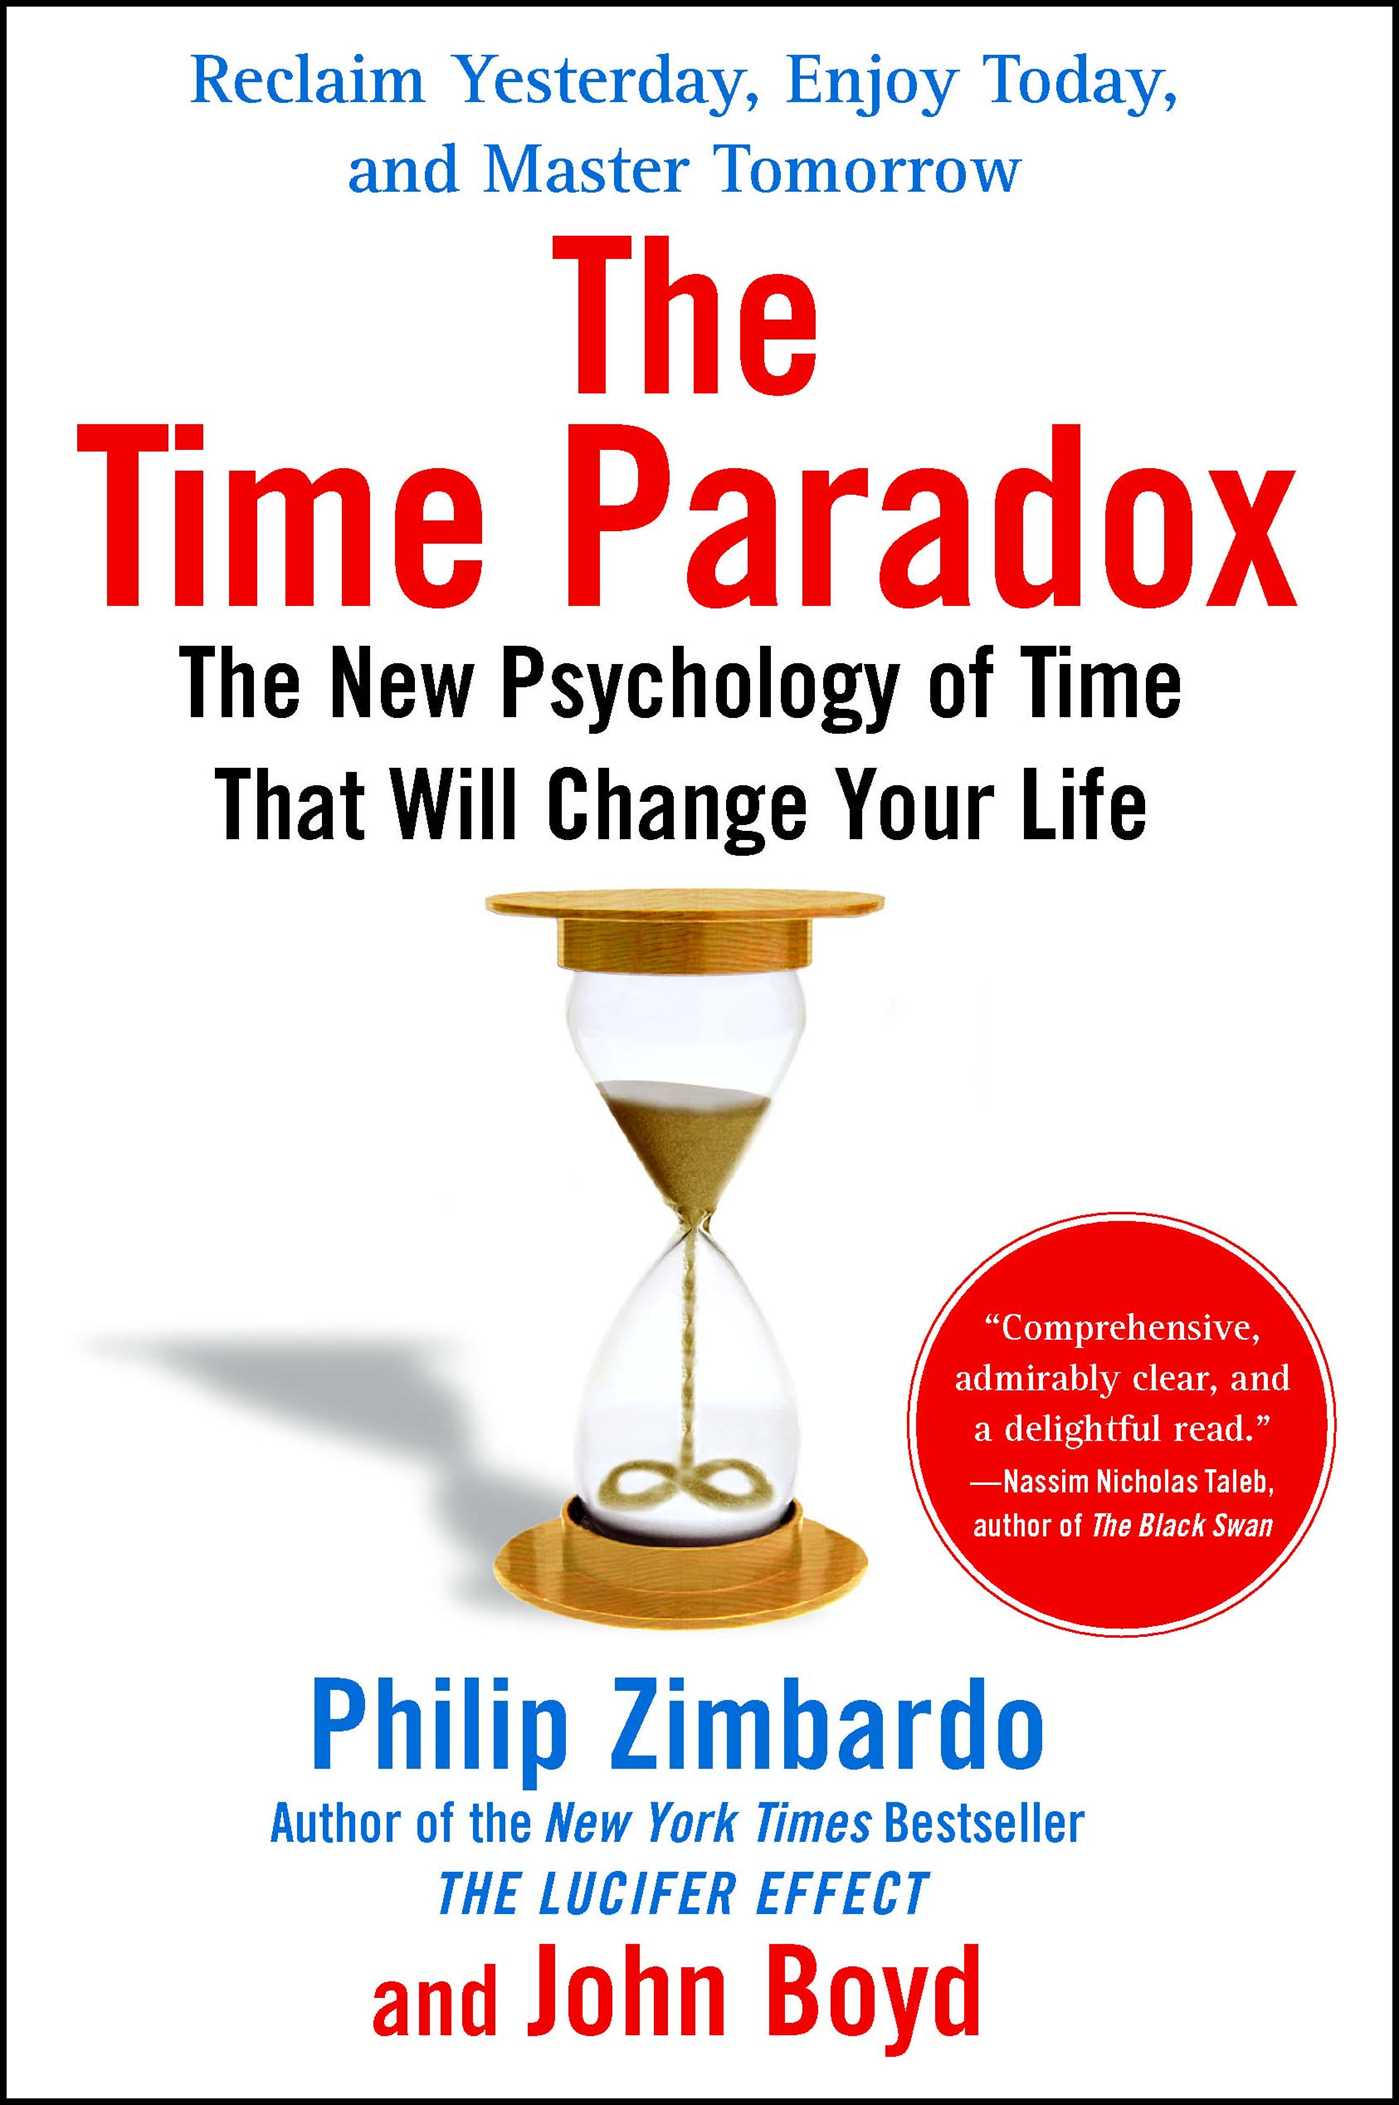 The time paradox 9781416541998 hr